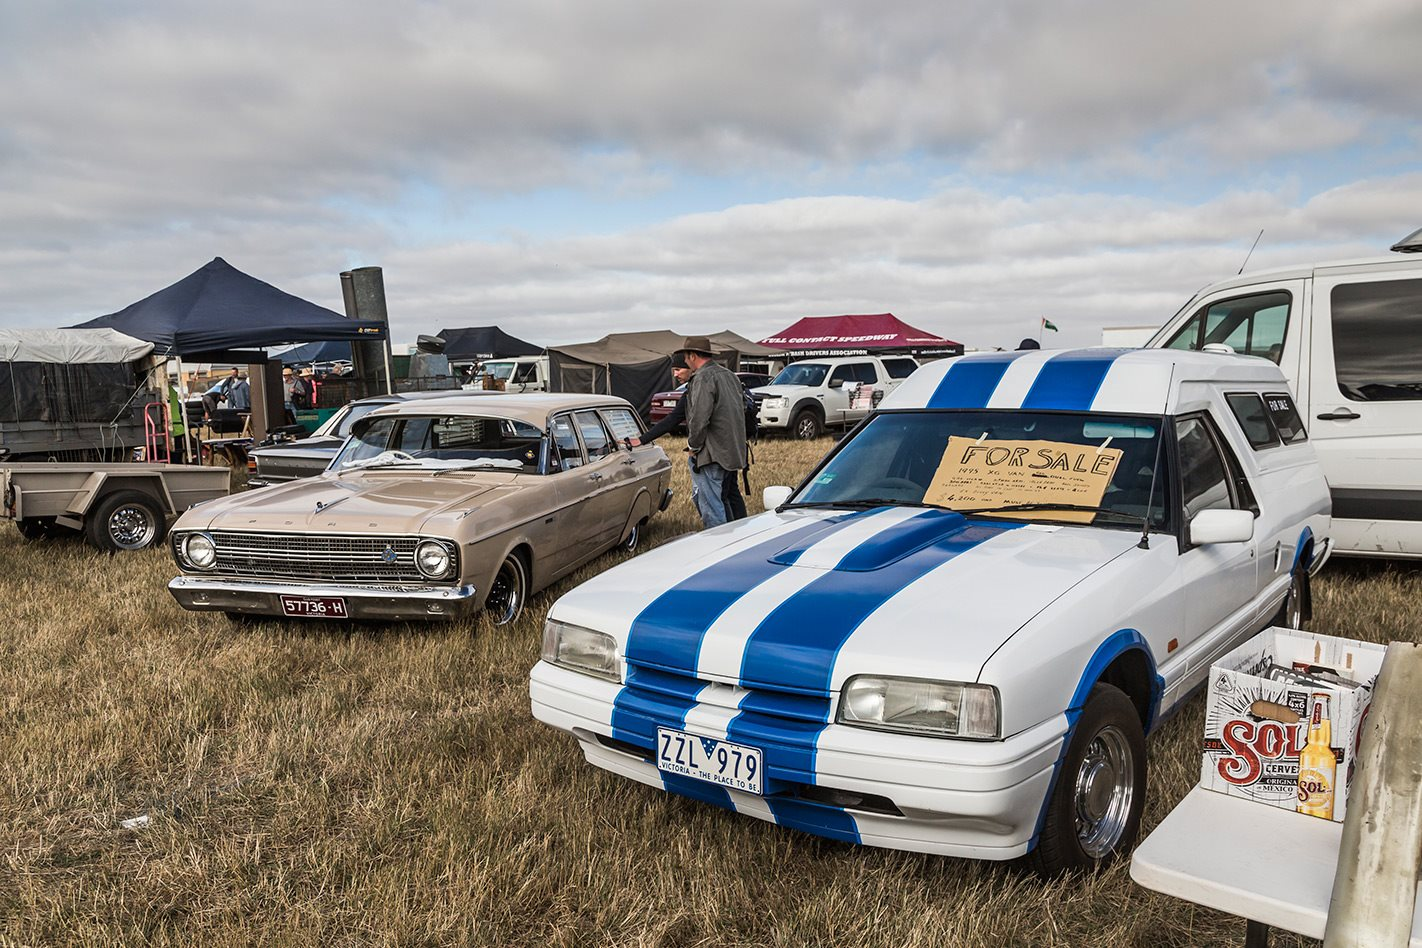 Ford Falcon wagon